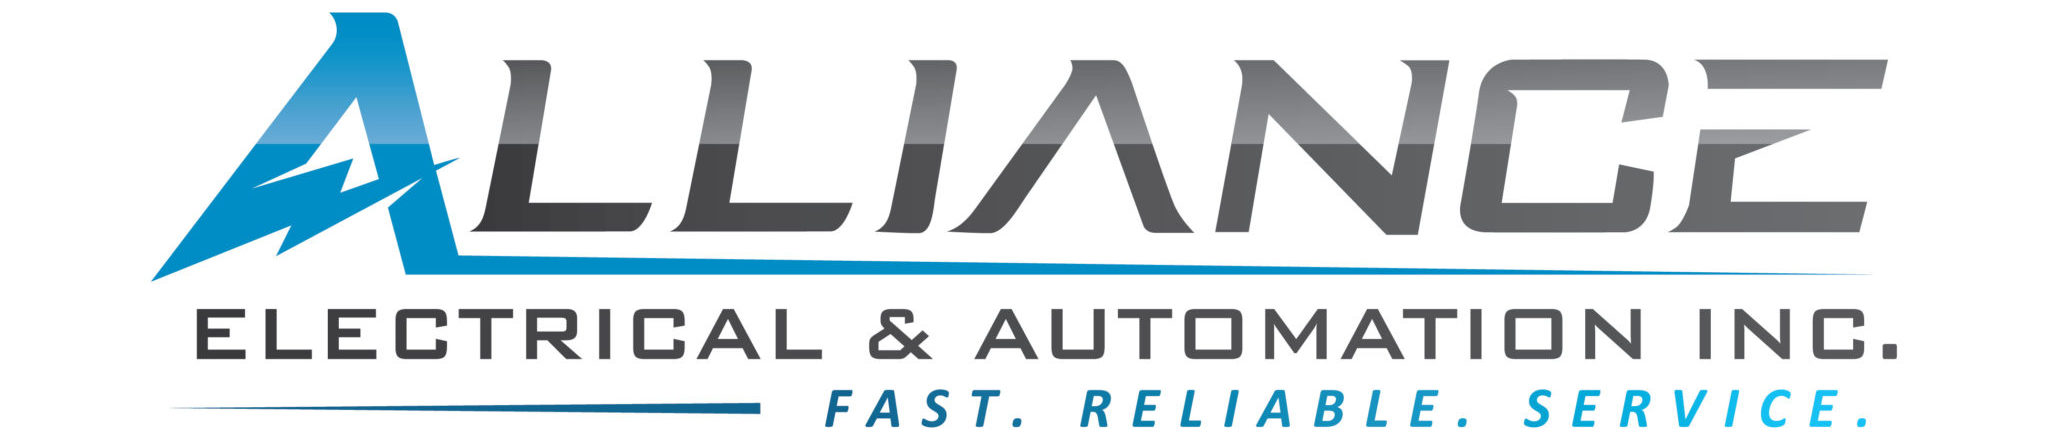 Alliance Electrical & Automation Inc.